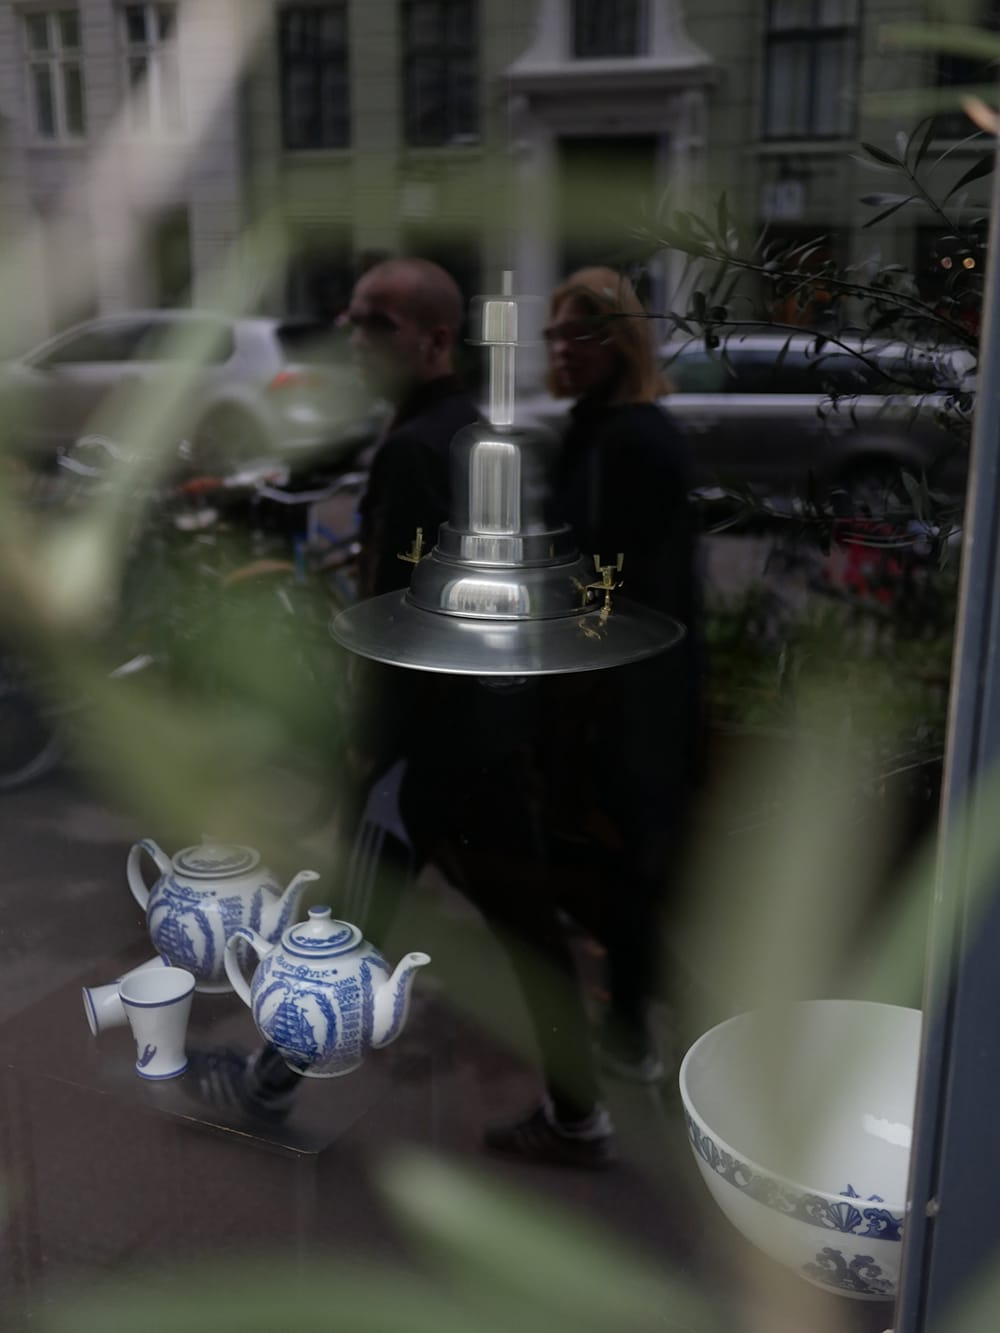 A pair of passersby reflecting at shop window with industrial lamp. Copenhagen